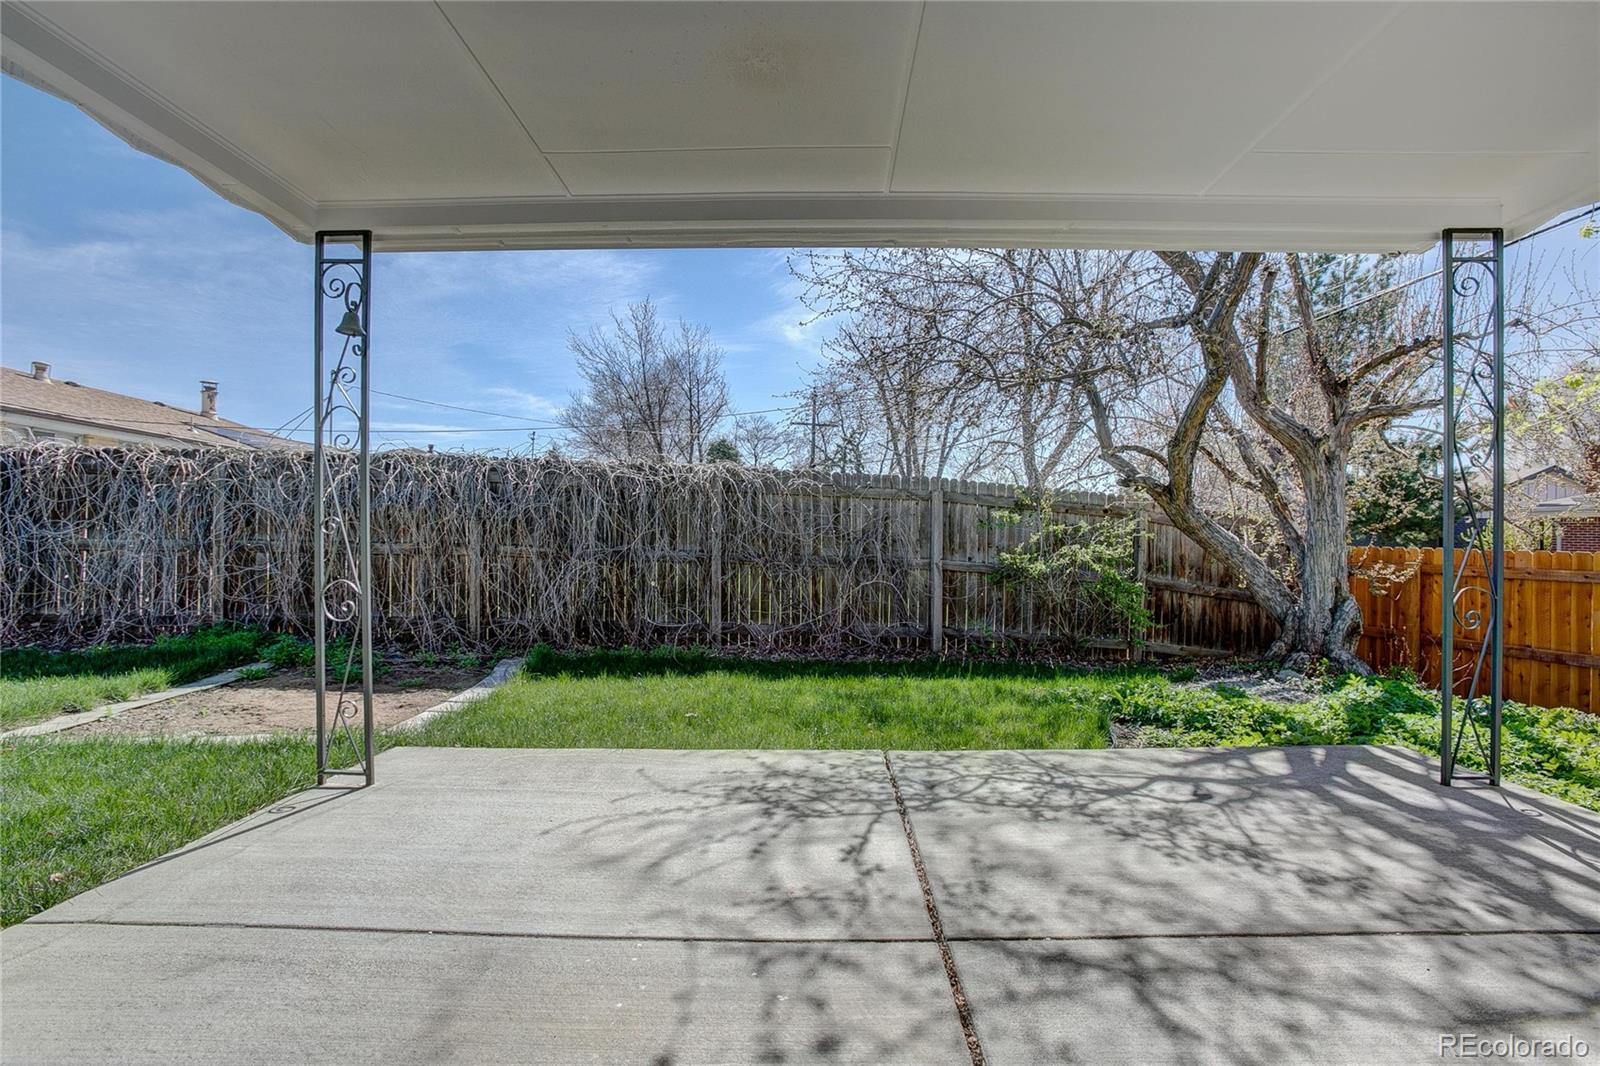 MLS# 9710462 - 33 - 1250 W 7th Ave Dr, Broomfield, CO 80020